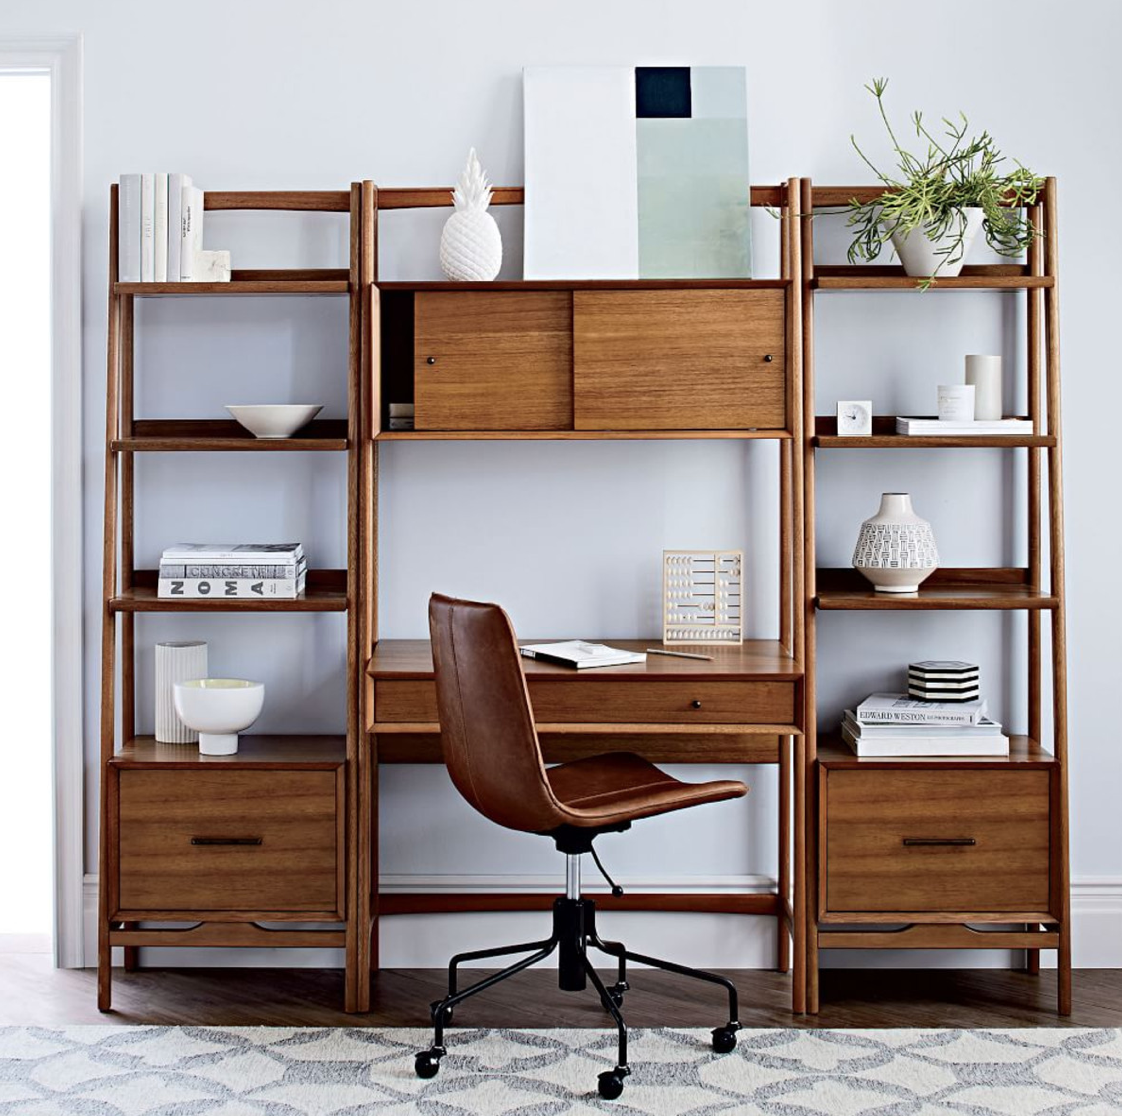 Solid wood 'Mid Century' style wall desk unit shown with a pair of bookshelf units, all from WestElm. Desk unit £599. Shelves £499.